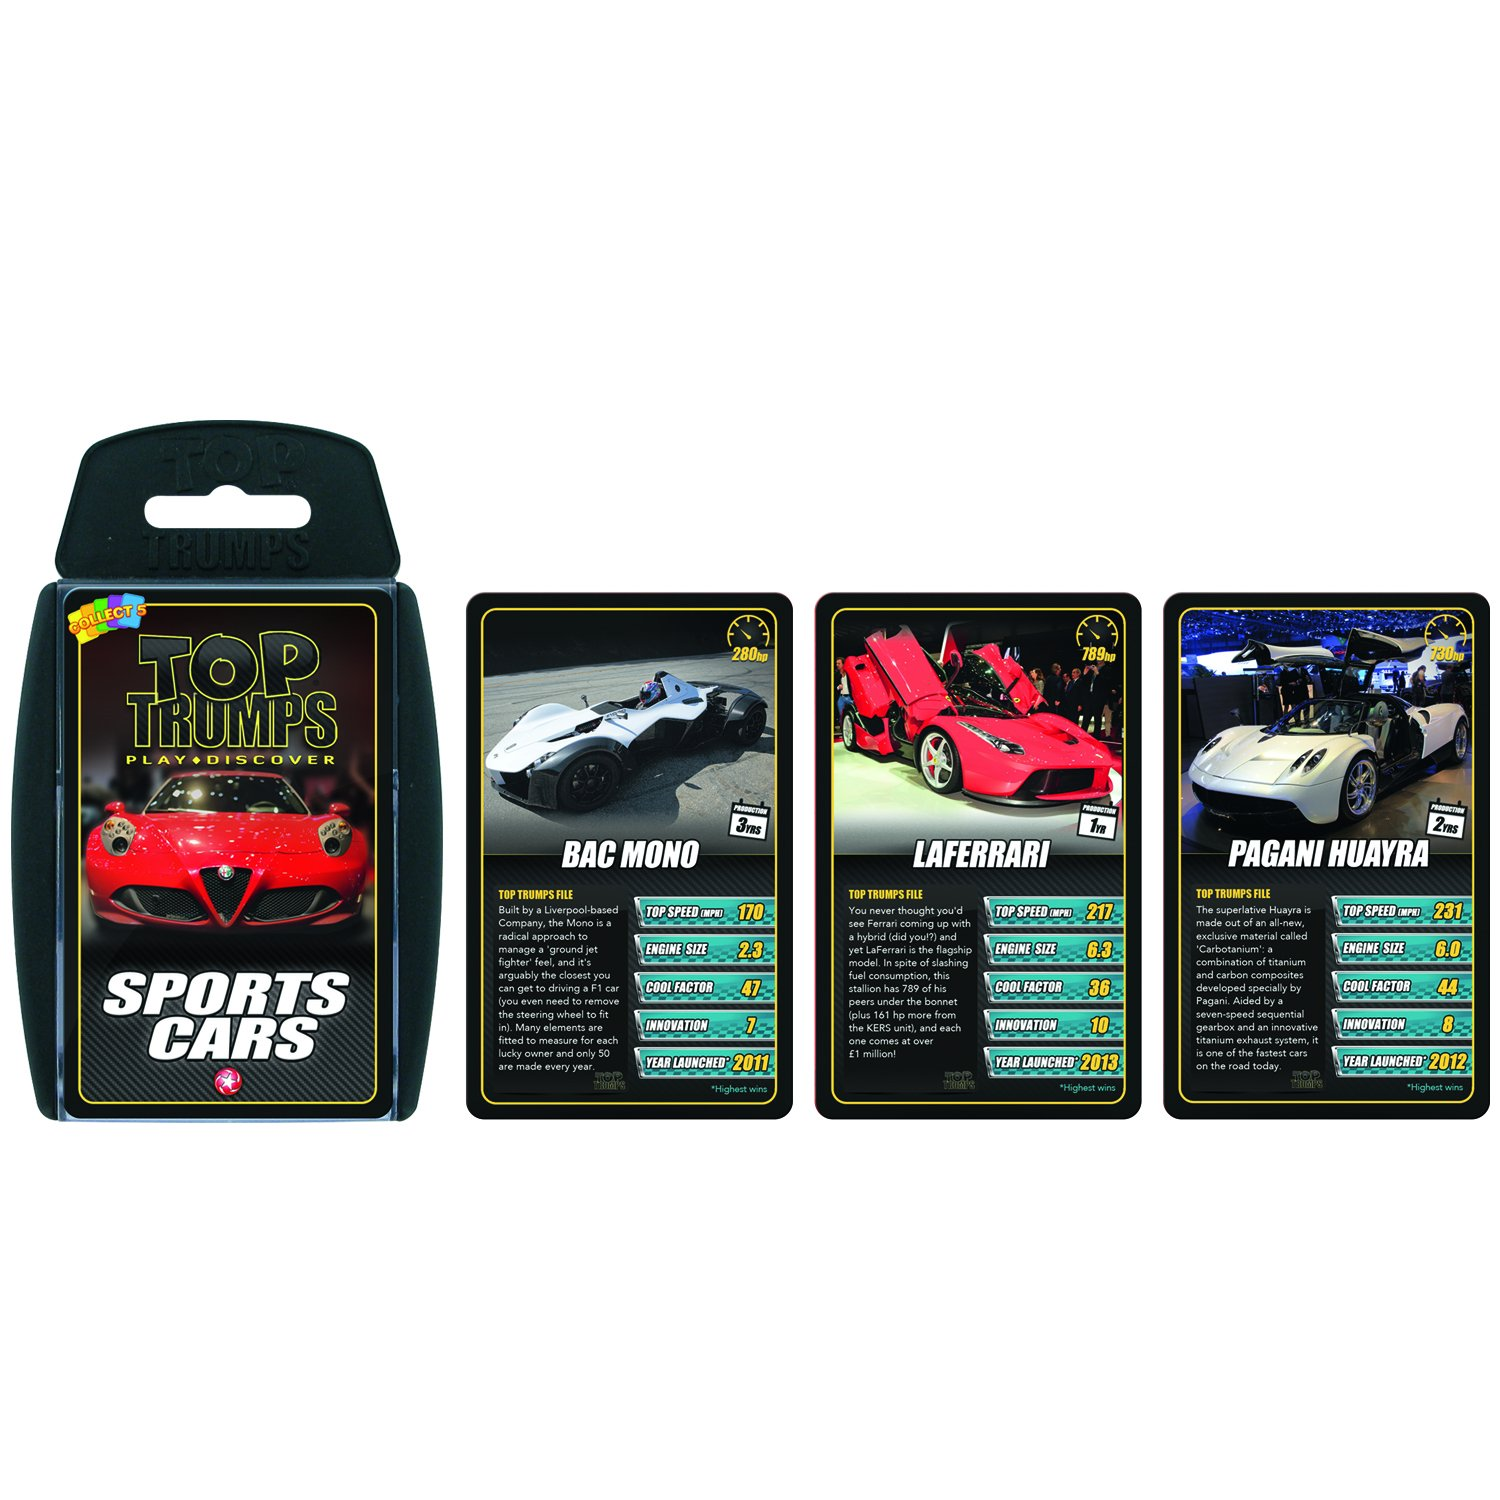 Amazoncom Sports Cars Top Trumps Card Game Educational Card - Sports cars top trumps